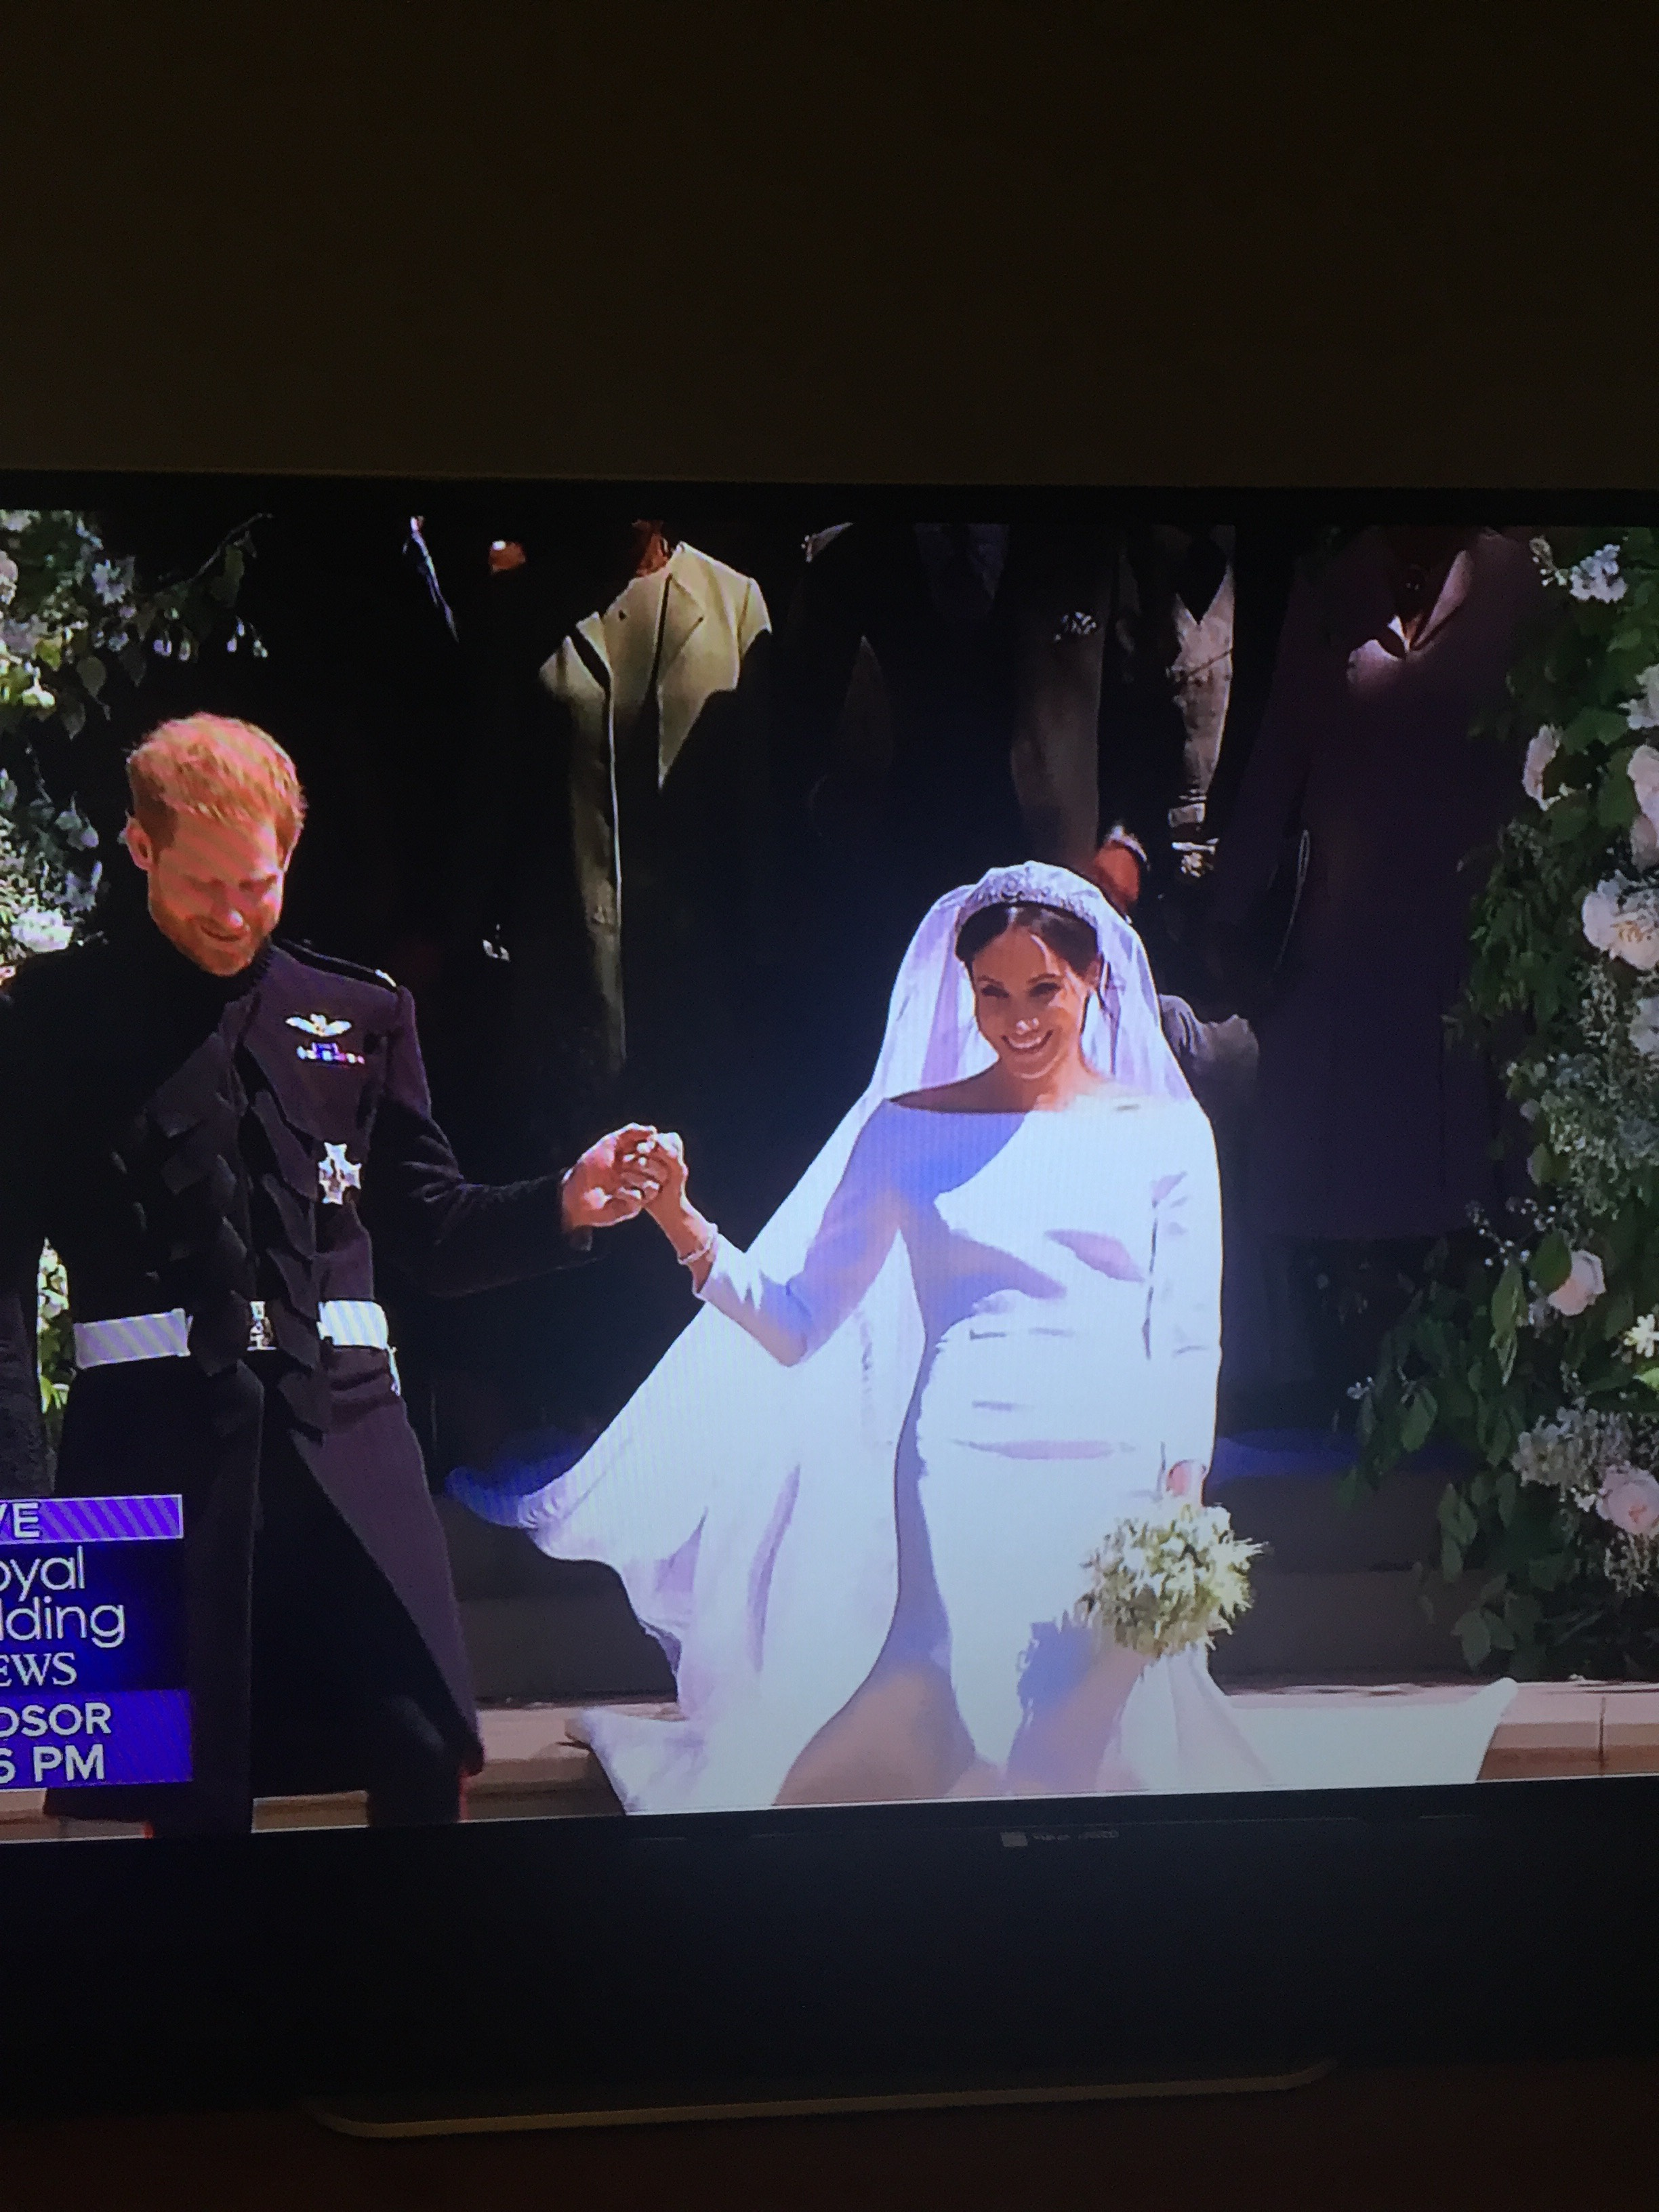 Royal Wedding.jpeg